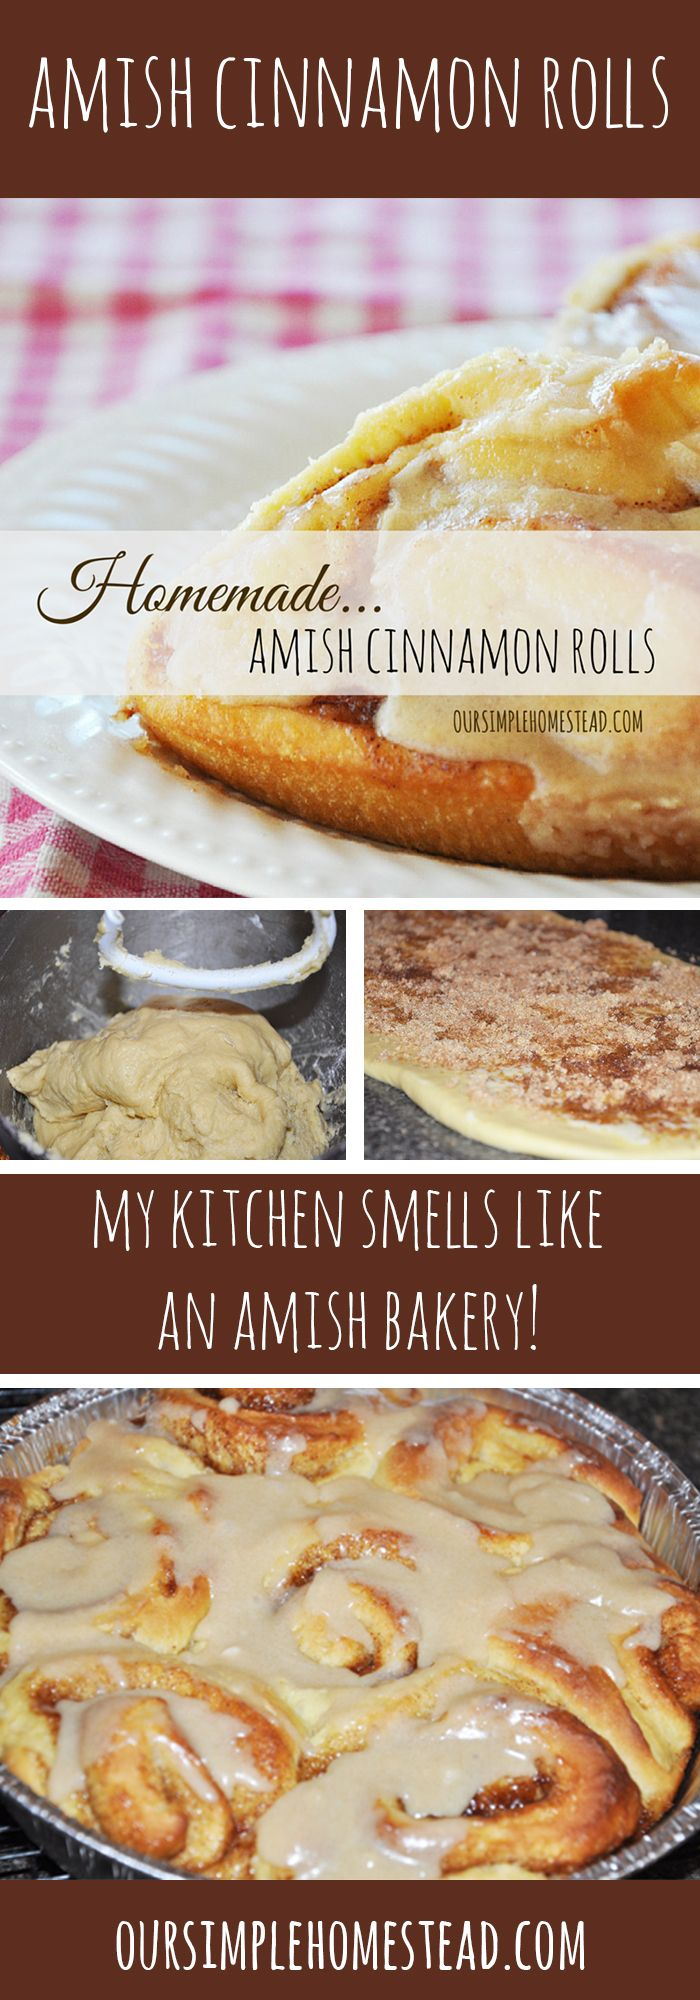 Amish Cinnamon Rolls - My house smells like an Amish bakery when I make these cinnamon rolls, and the taste is by-far the best cinnamon roll recipe I have ever made.